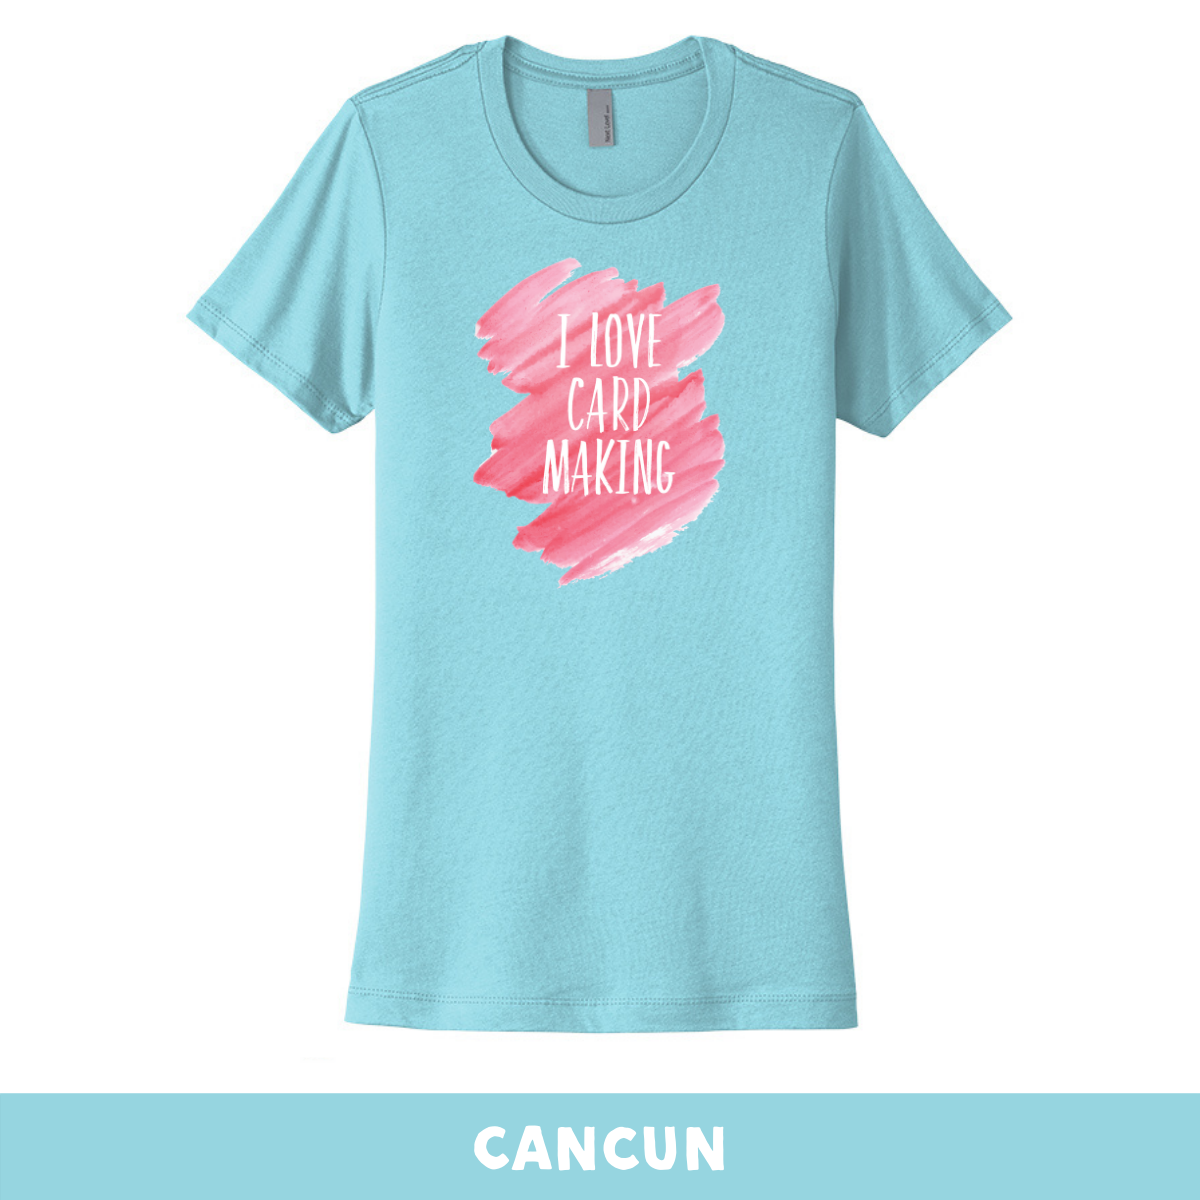 Cancun - Crew Neck Boyfriend Tee - I Love Cardmaking